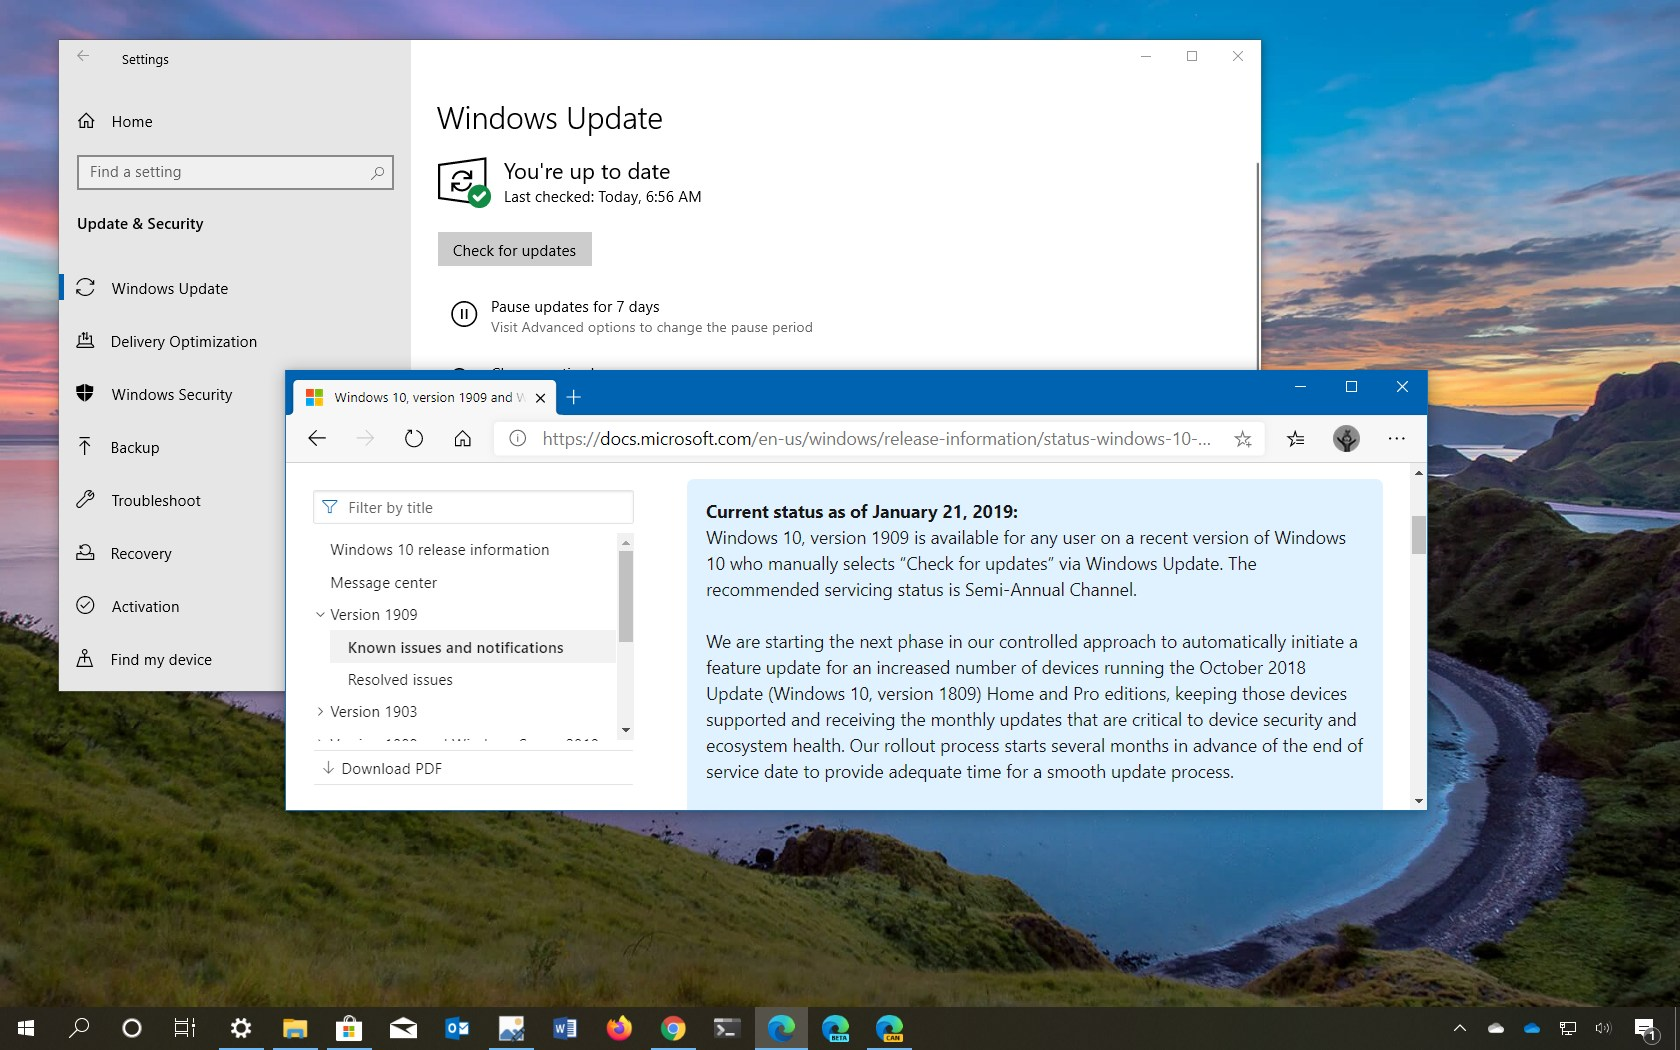 Windows 10 version 1909 fully available notice